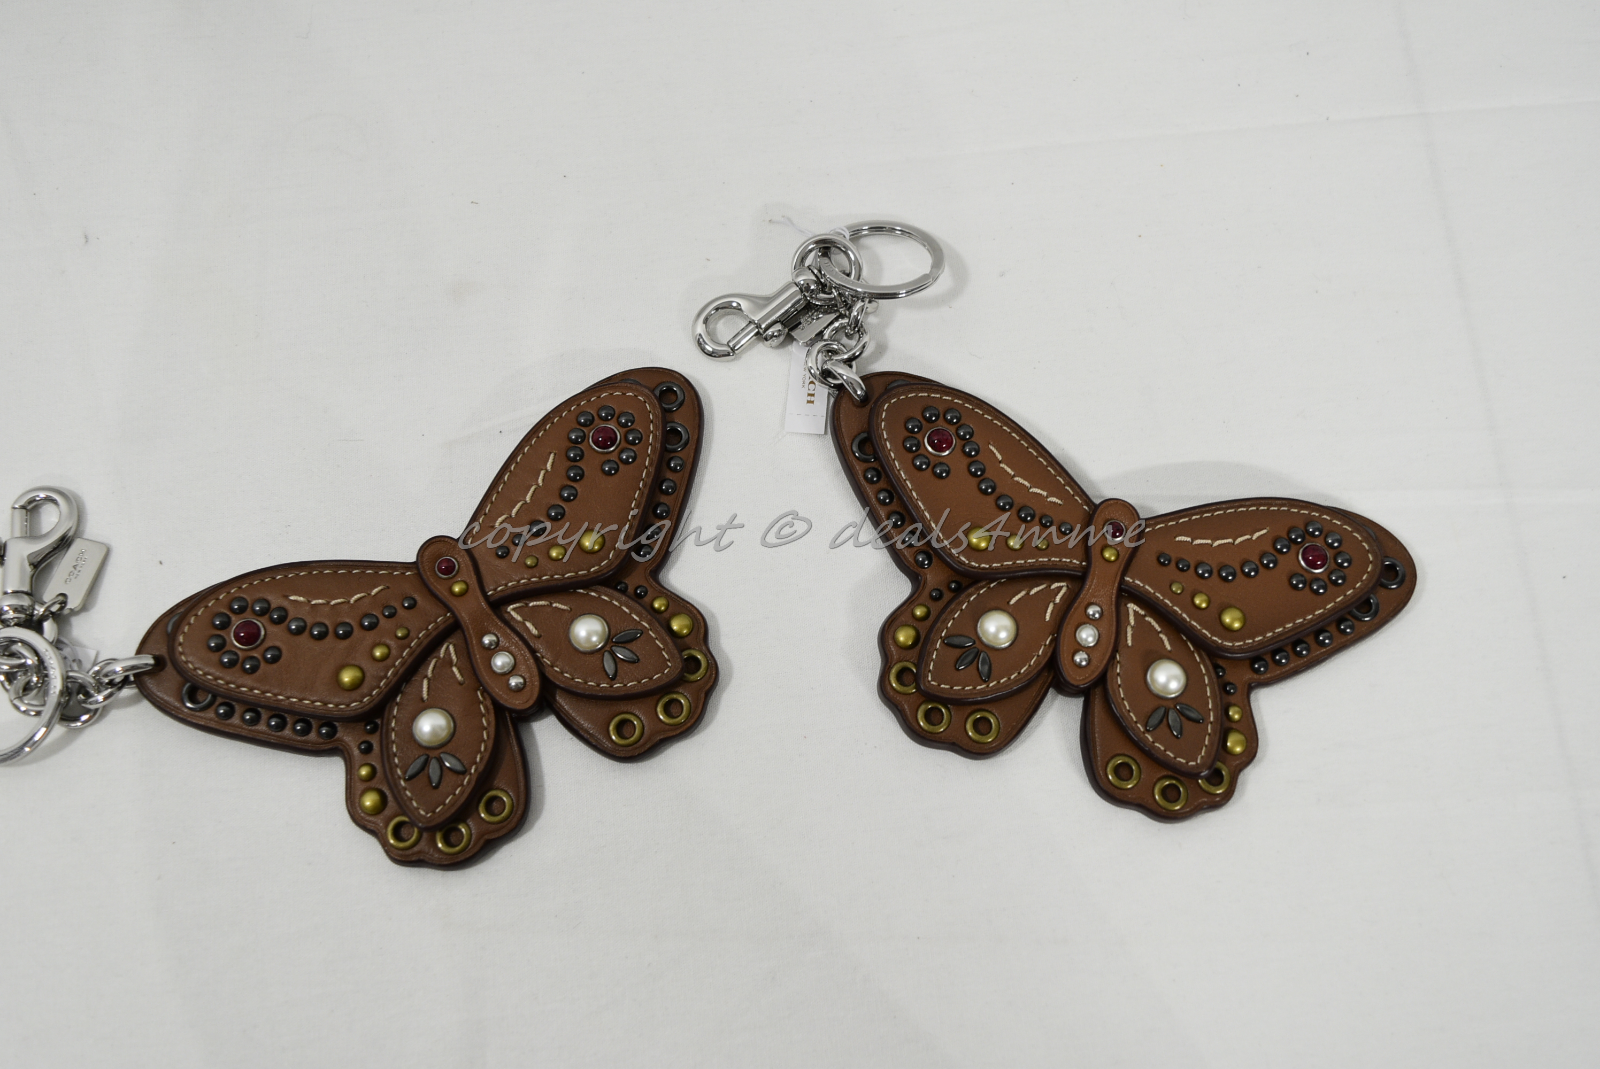 Coach F58996 /F58997 Studded Leather Butterfly Keyring/Key-Clip/ Bag Charm Brown image 15